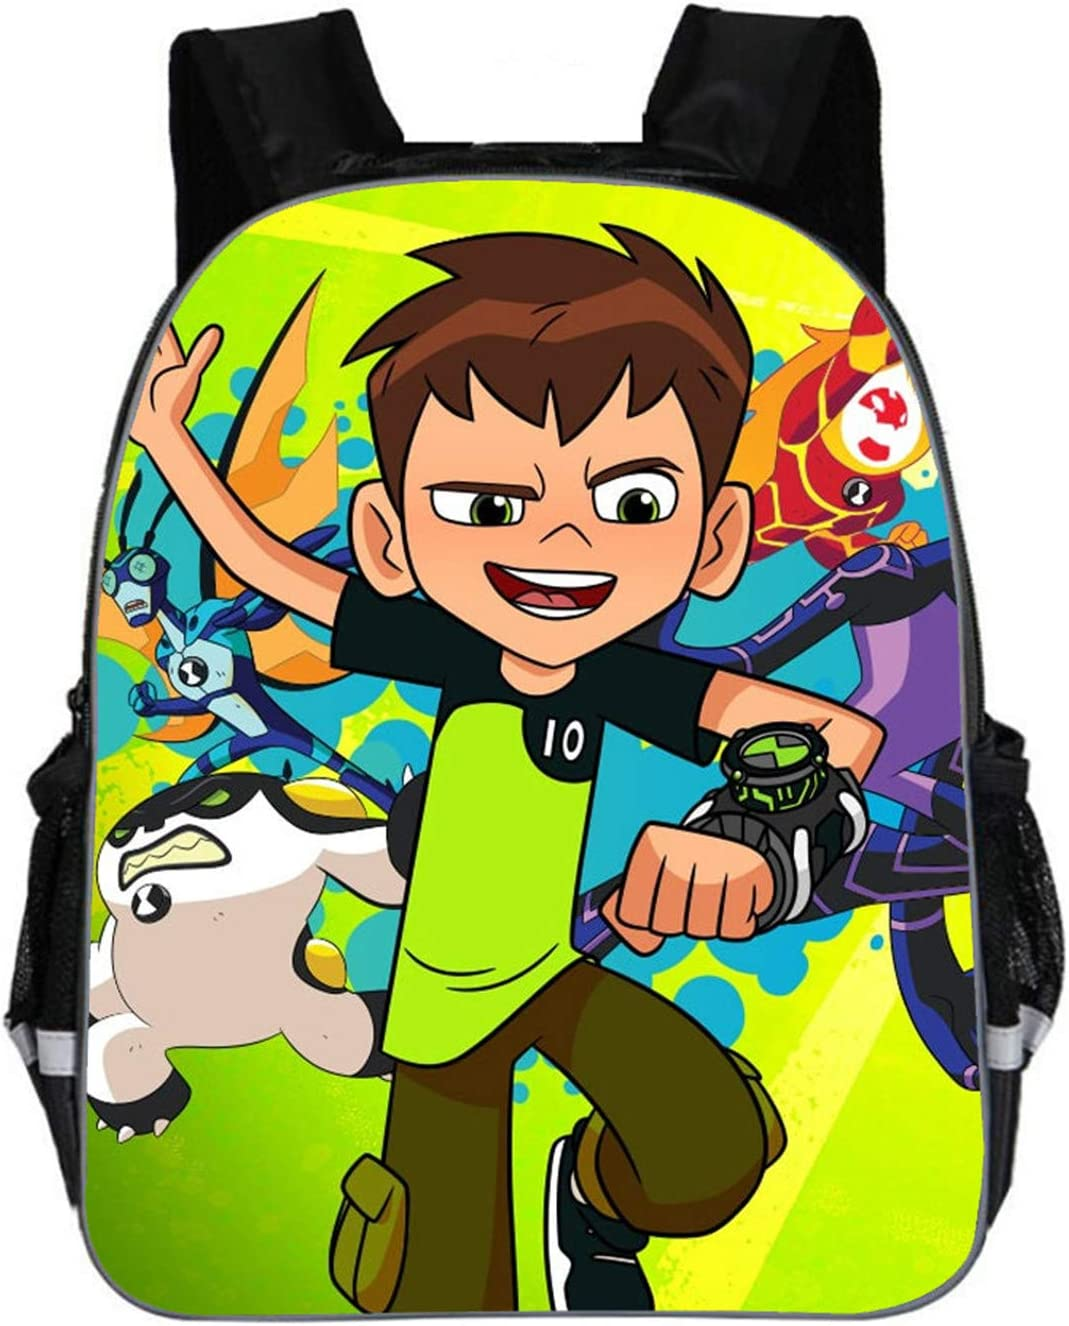 Indianapolis Mall Gin-Back Kids Child Ben Max 69% OFF School Backpack-Waterproo 10 Lightweight